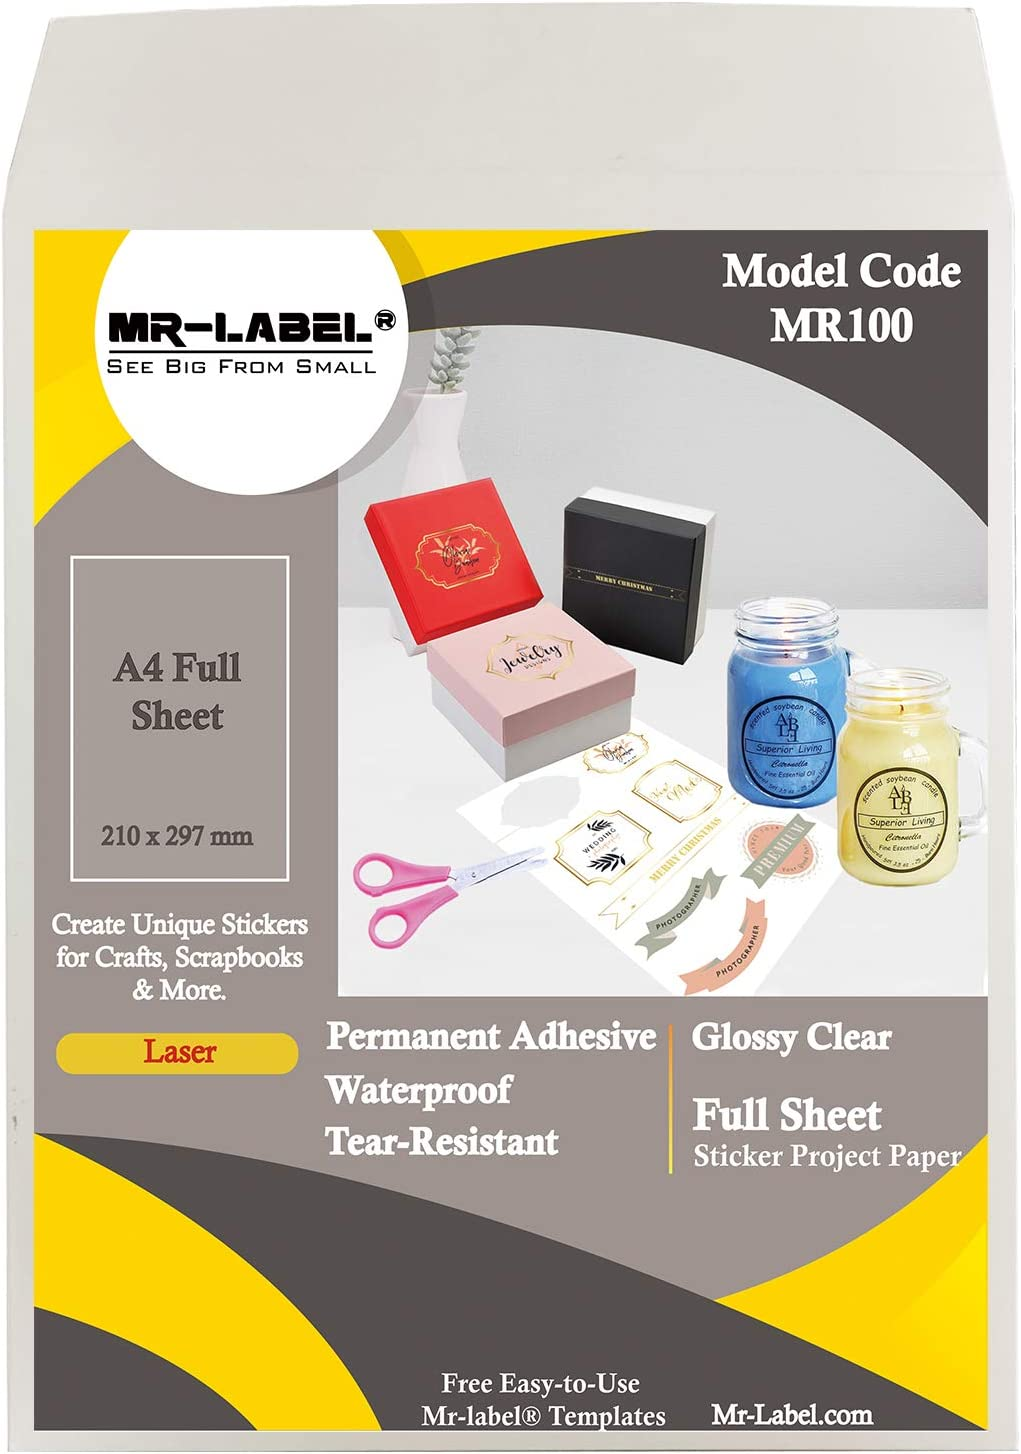 Tear-Resistant stickers for Kitchen use Laser Printer Only Mr-Label Waterproof Removabl Labels Organising and filing